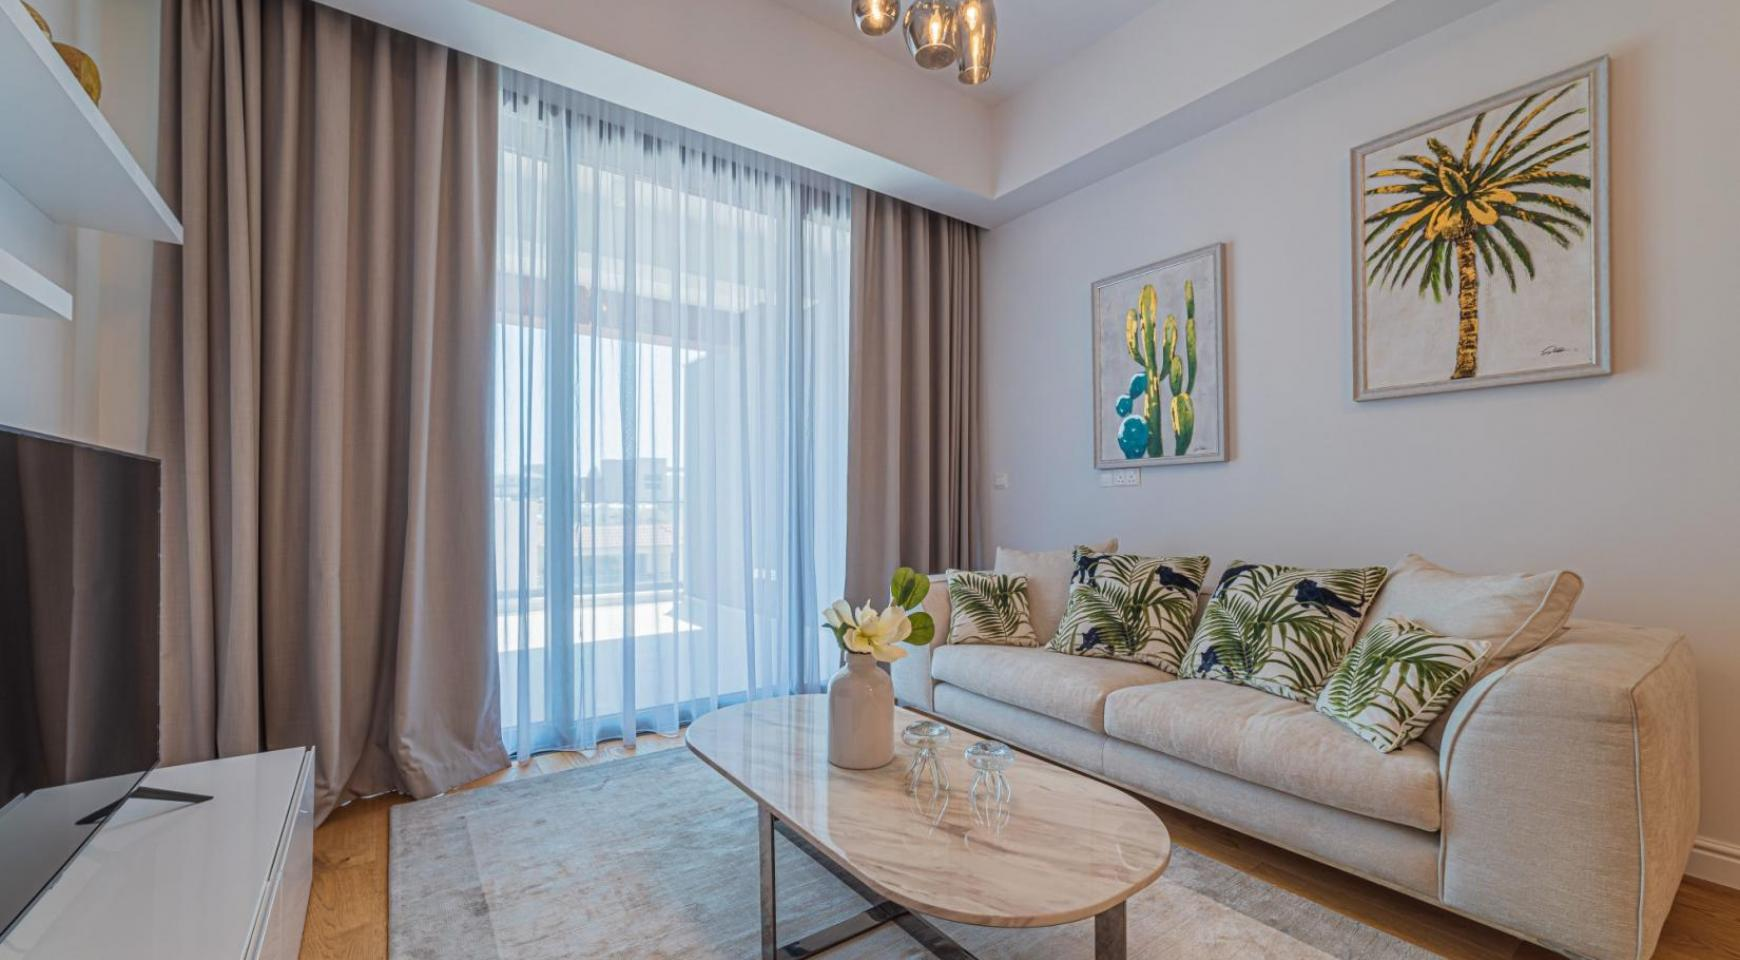 Hortensia Residence, Apt. 202. 2 Bedroom Apartment within a New Complex near the Sea  - 51